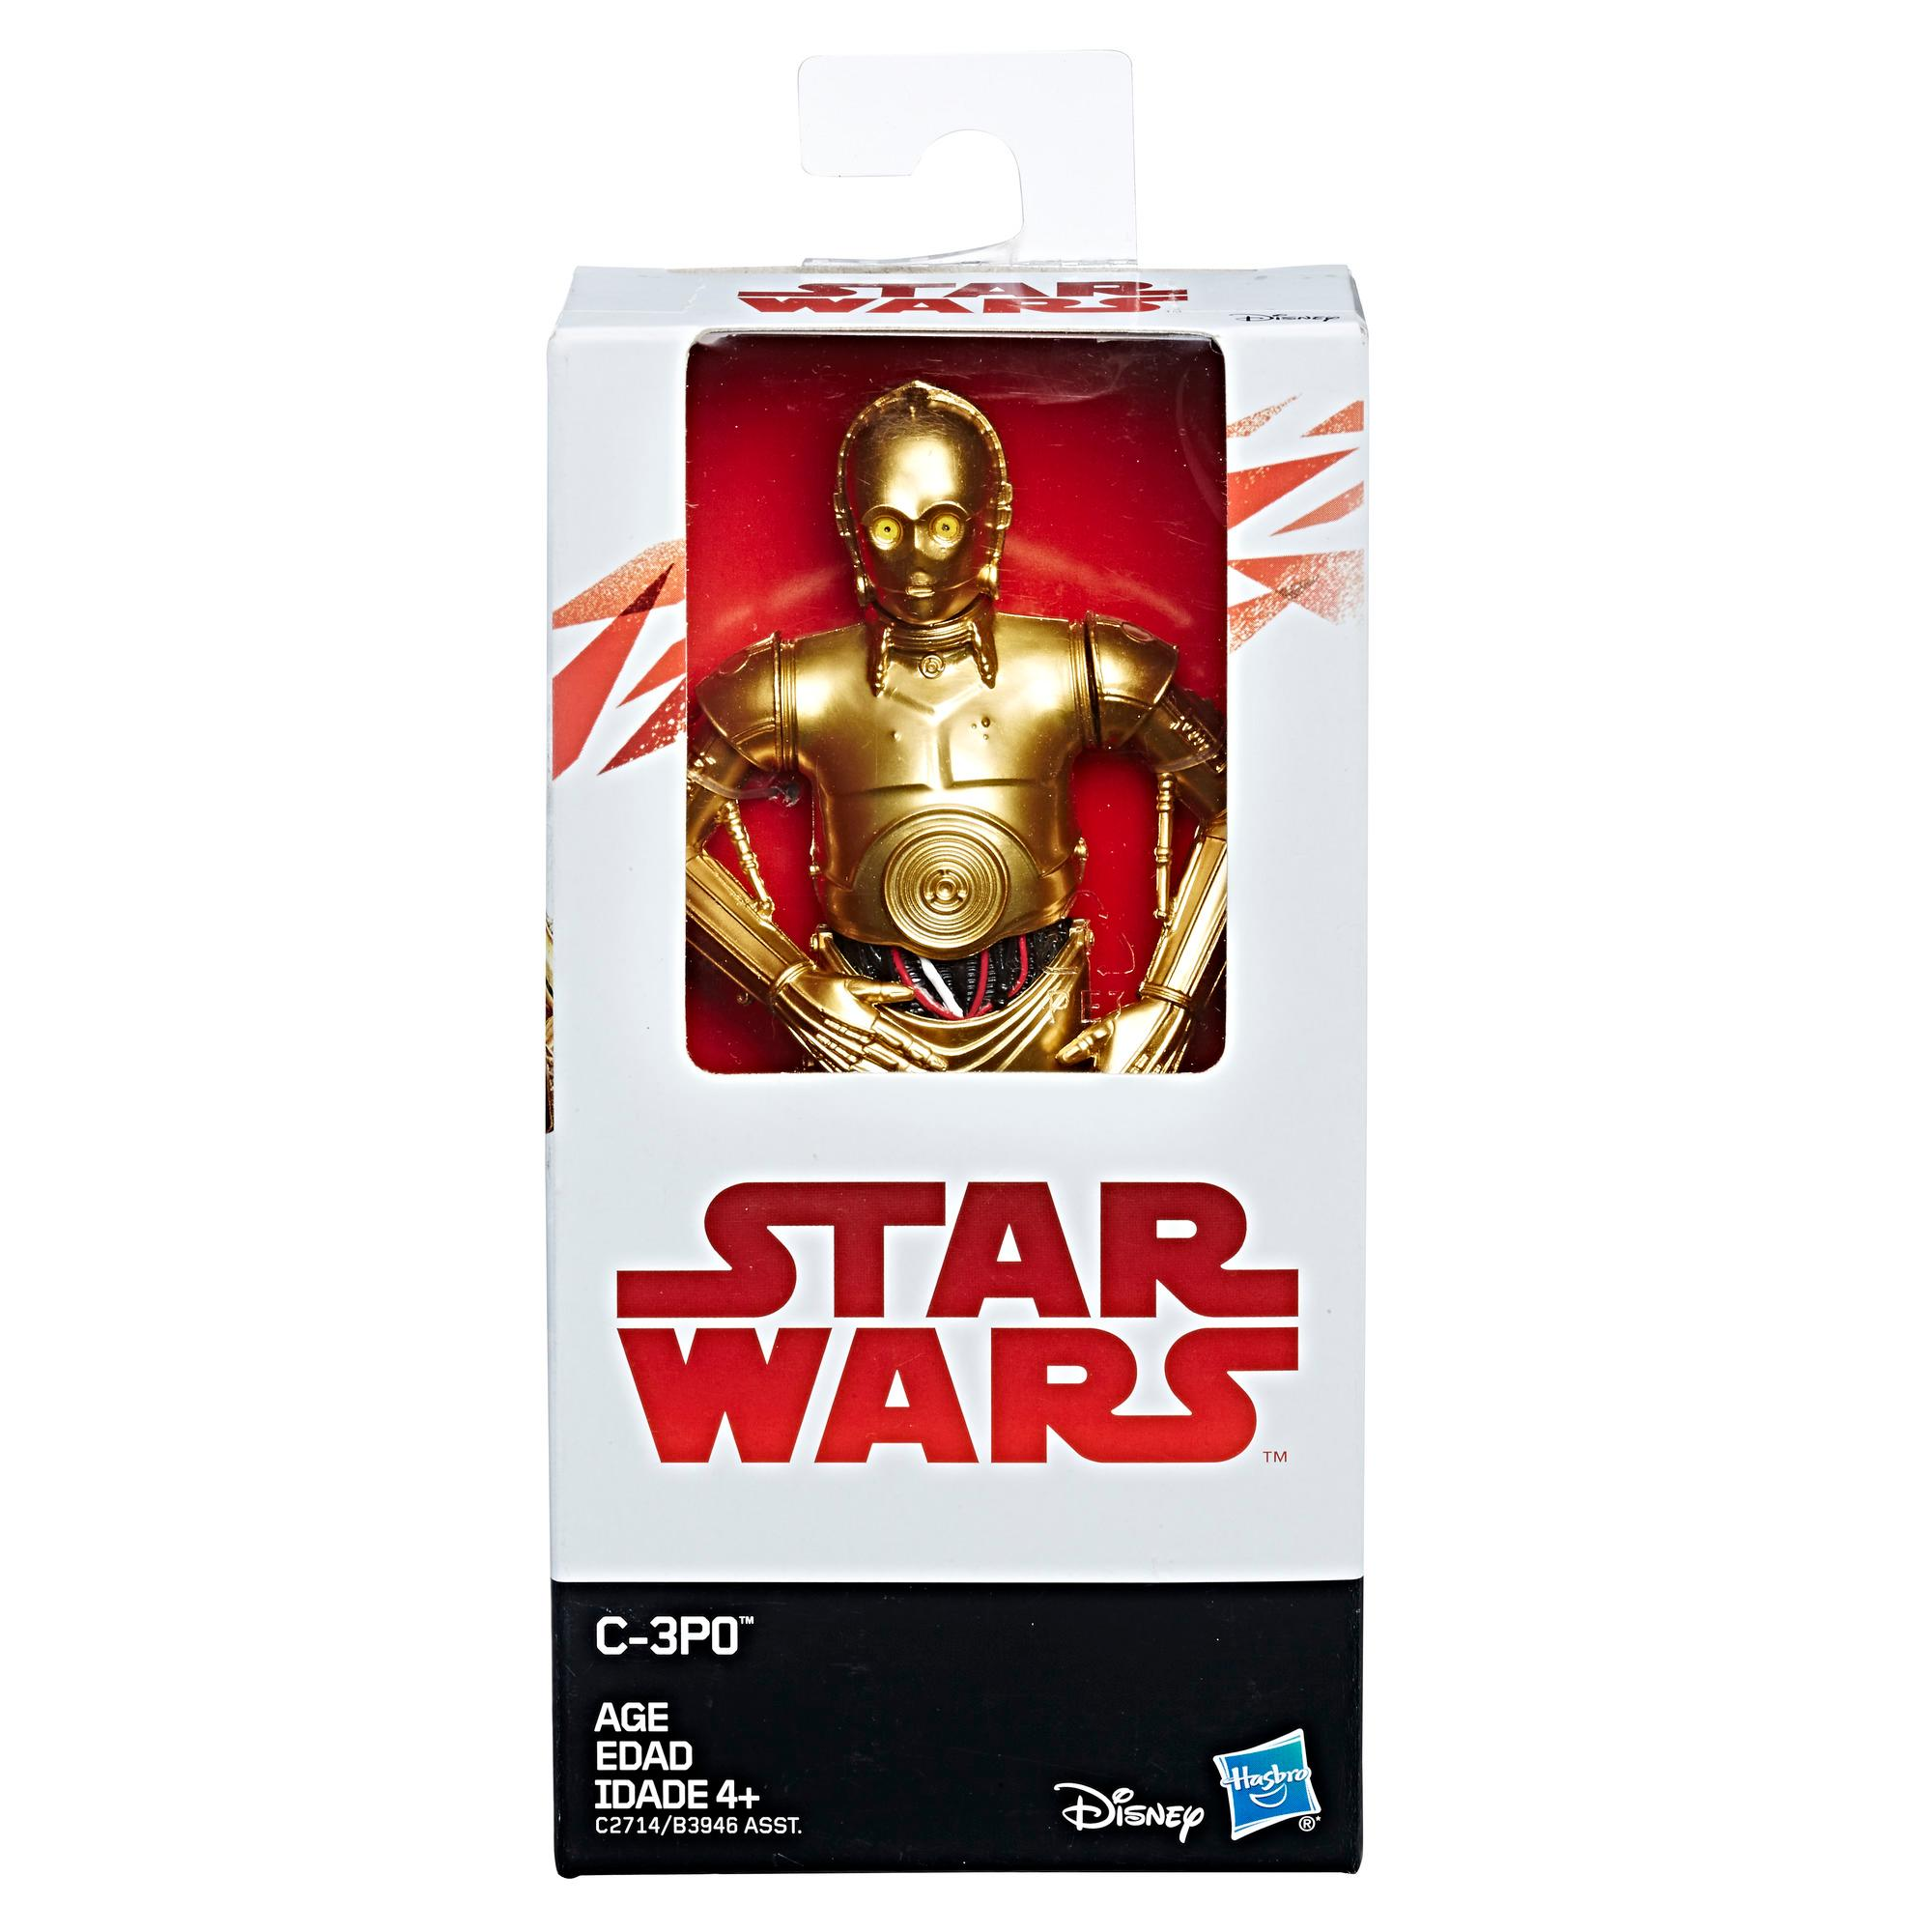 Star Wars: A New Hope 6-inch C-3PO